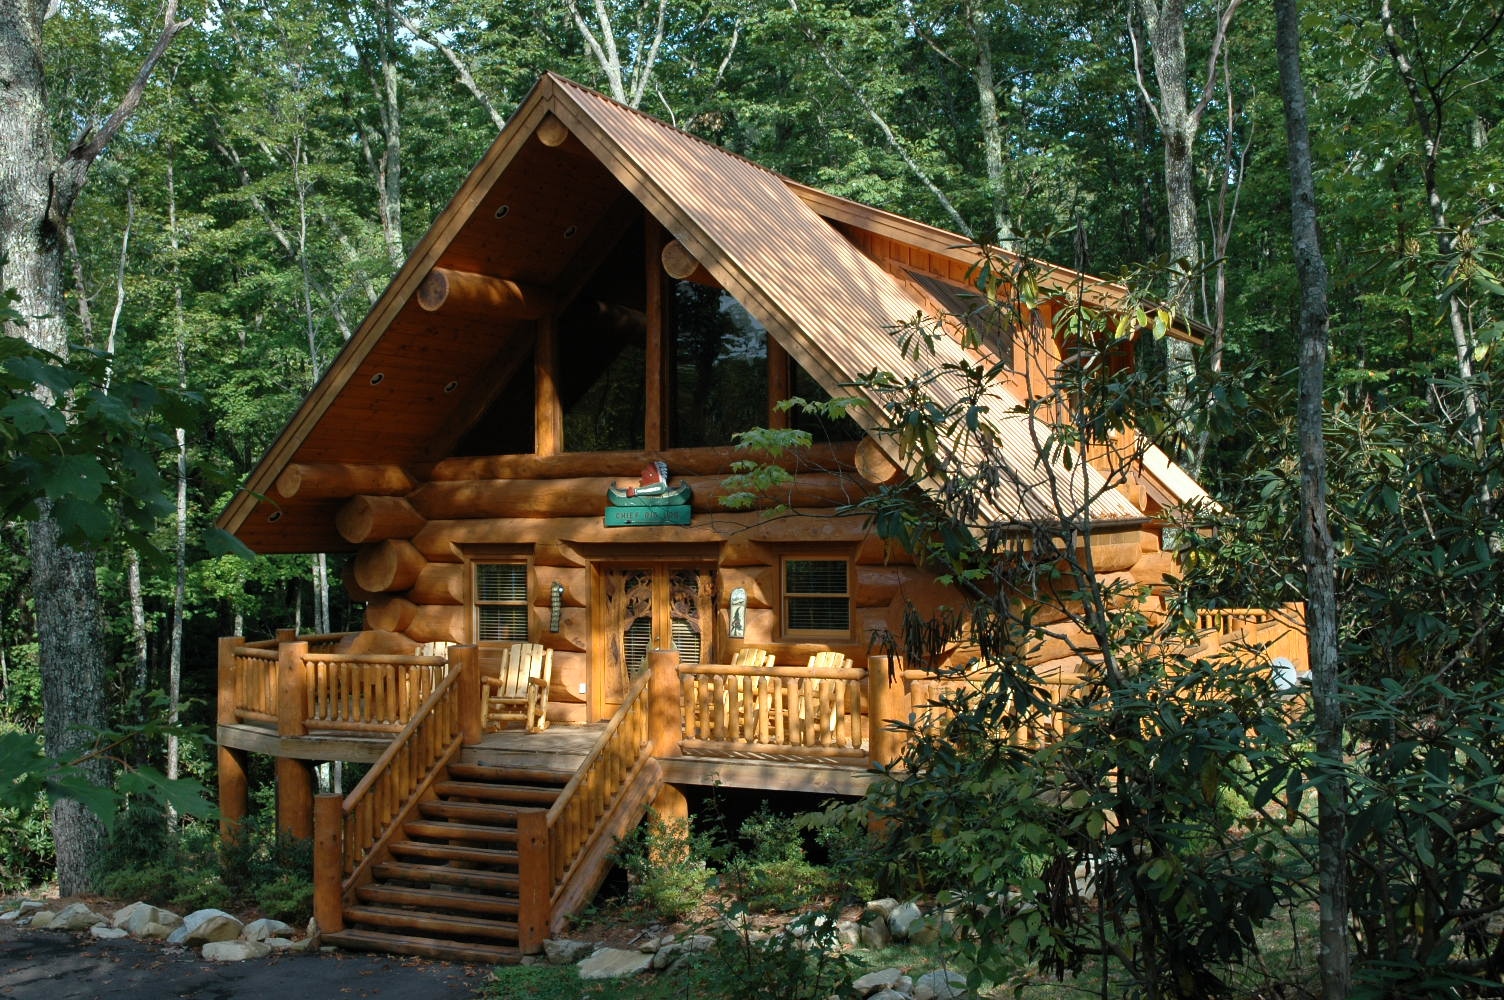 cbin for city bth nc great beutiful mountains rentals smoky bryson sale mountain tennessee cheap gret gatlinburg fetures cherokee cabin beuty mountins cabins